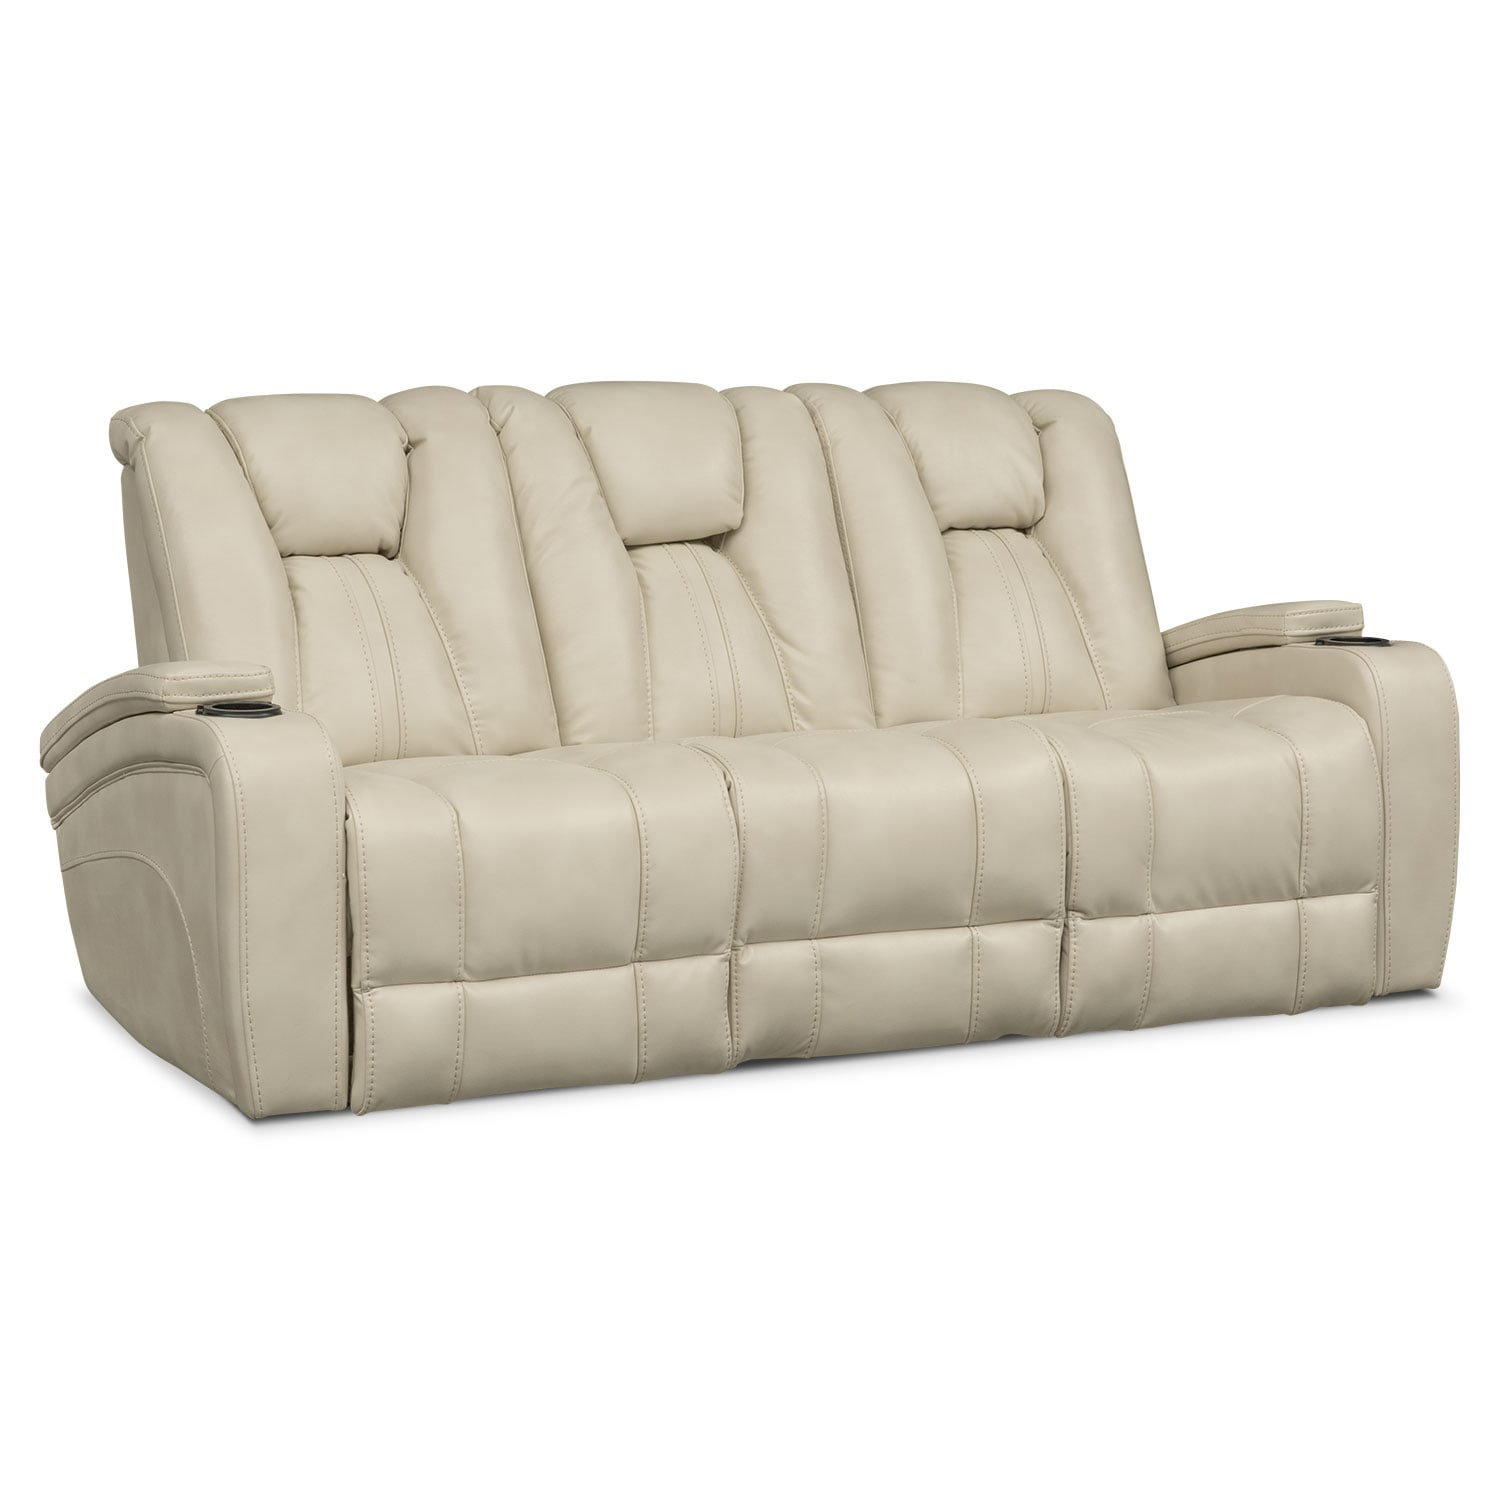 Pulsar Dual Power Reclining Sofa - Cream